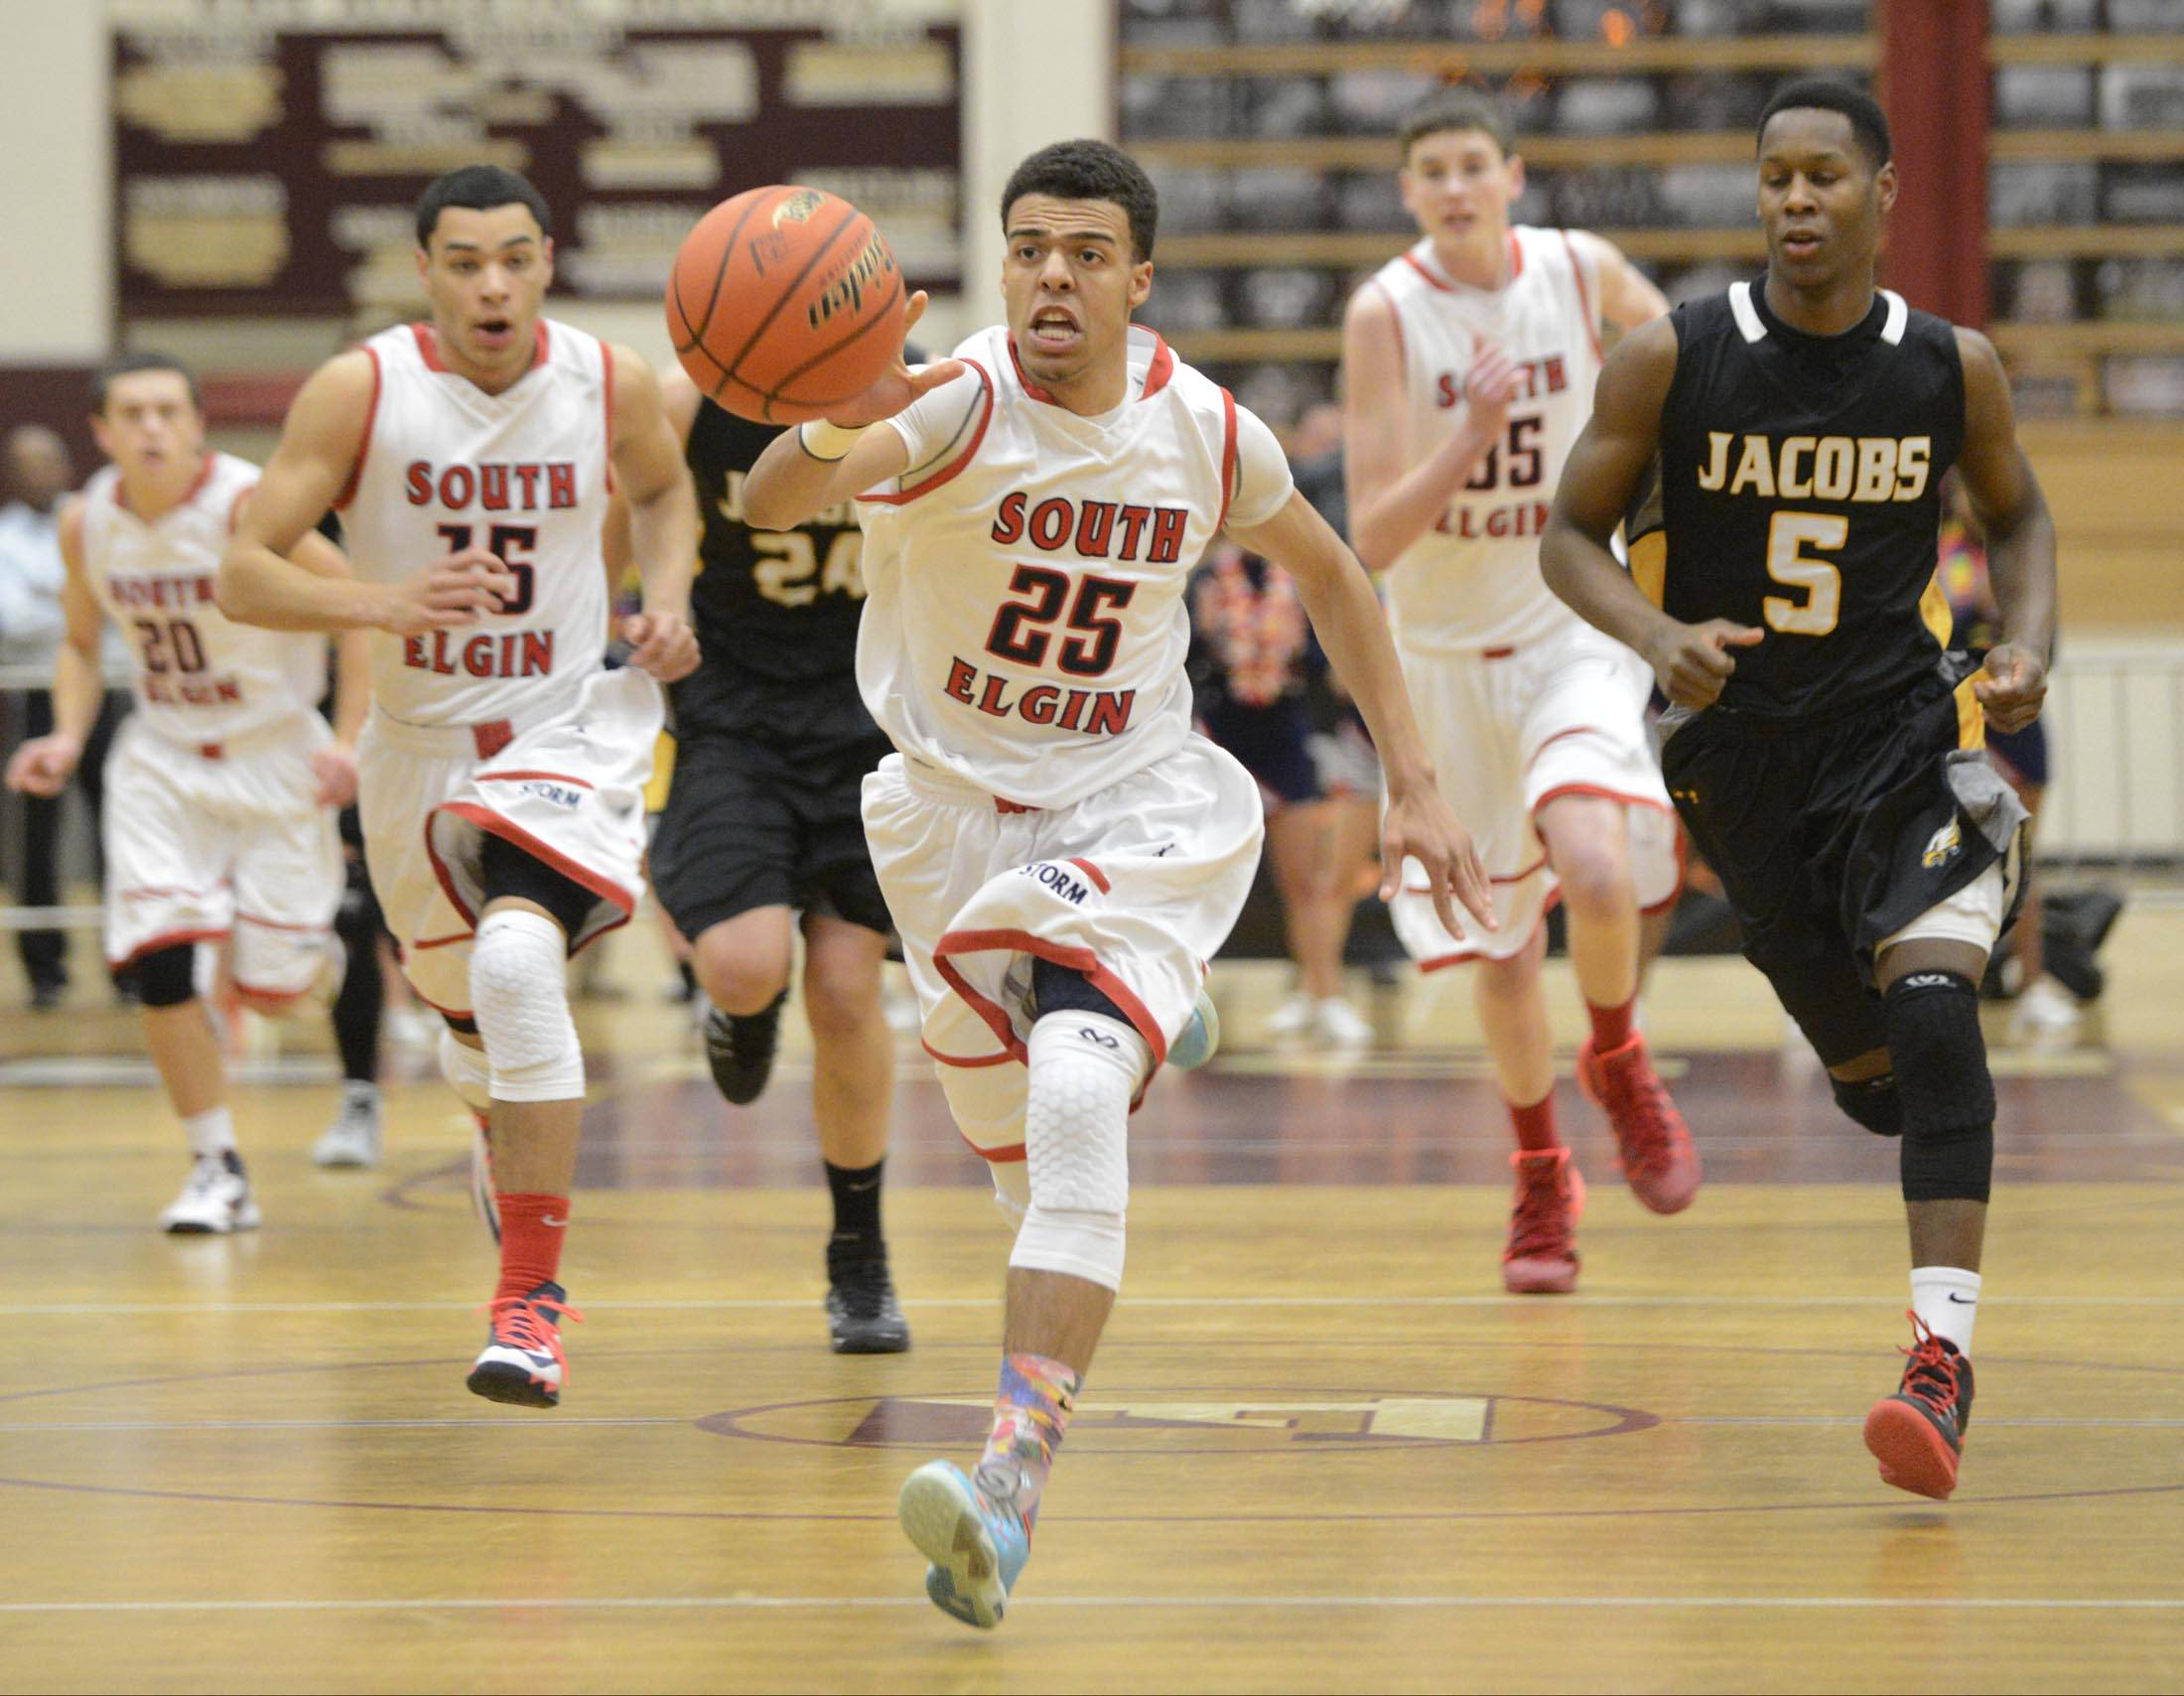 Images: South Elgin vs. Jacobs boys basketball